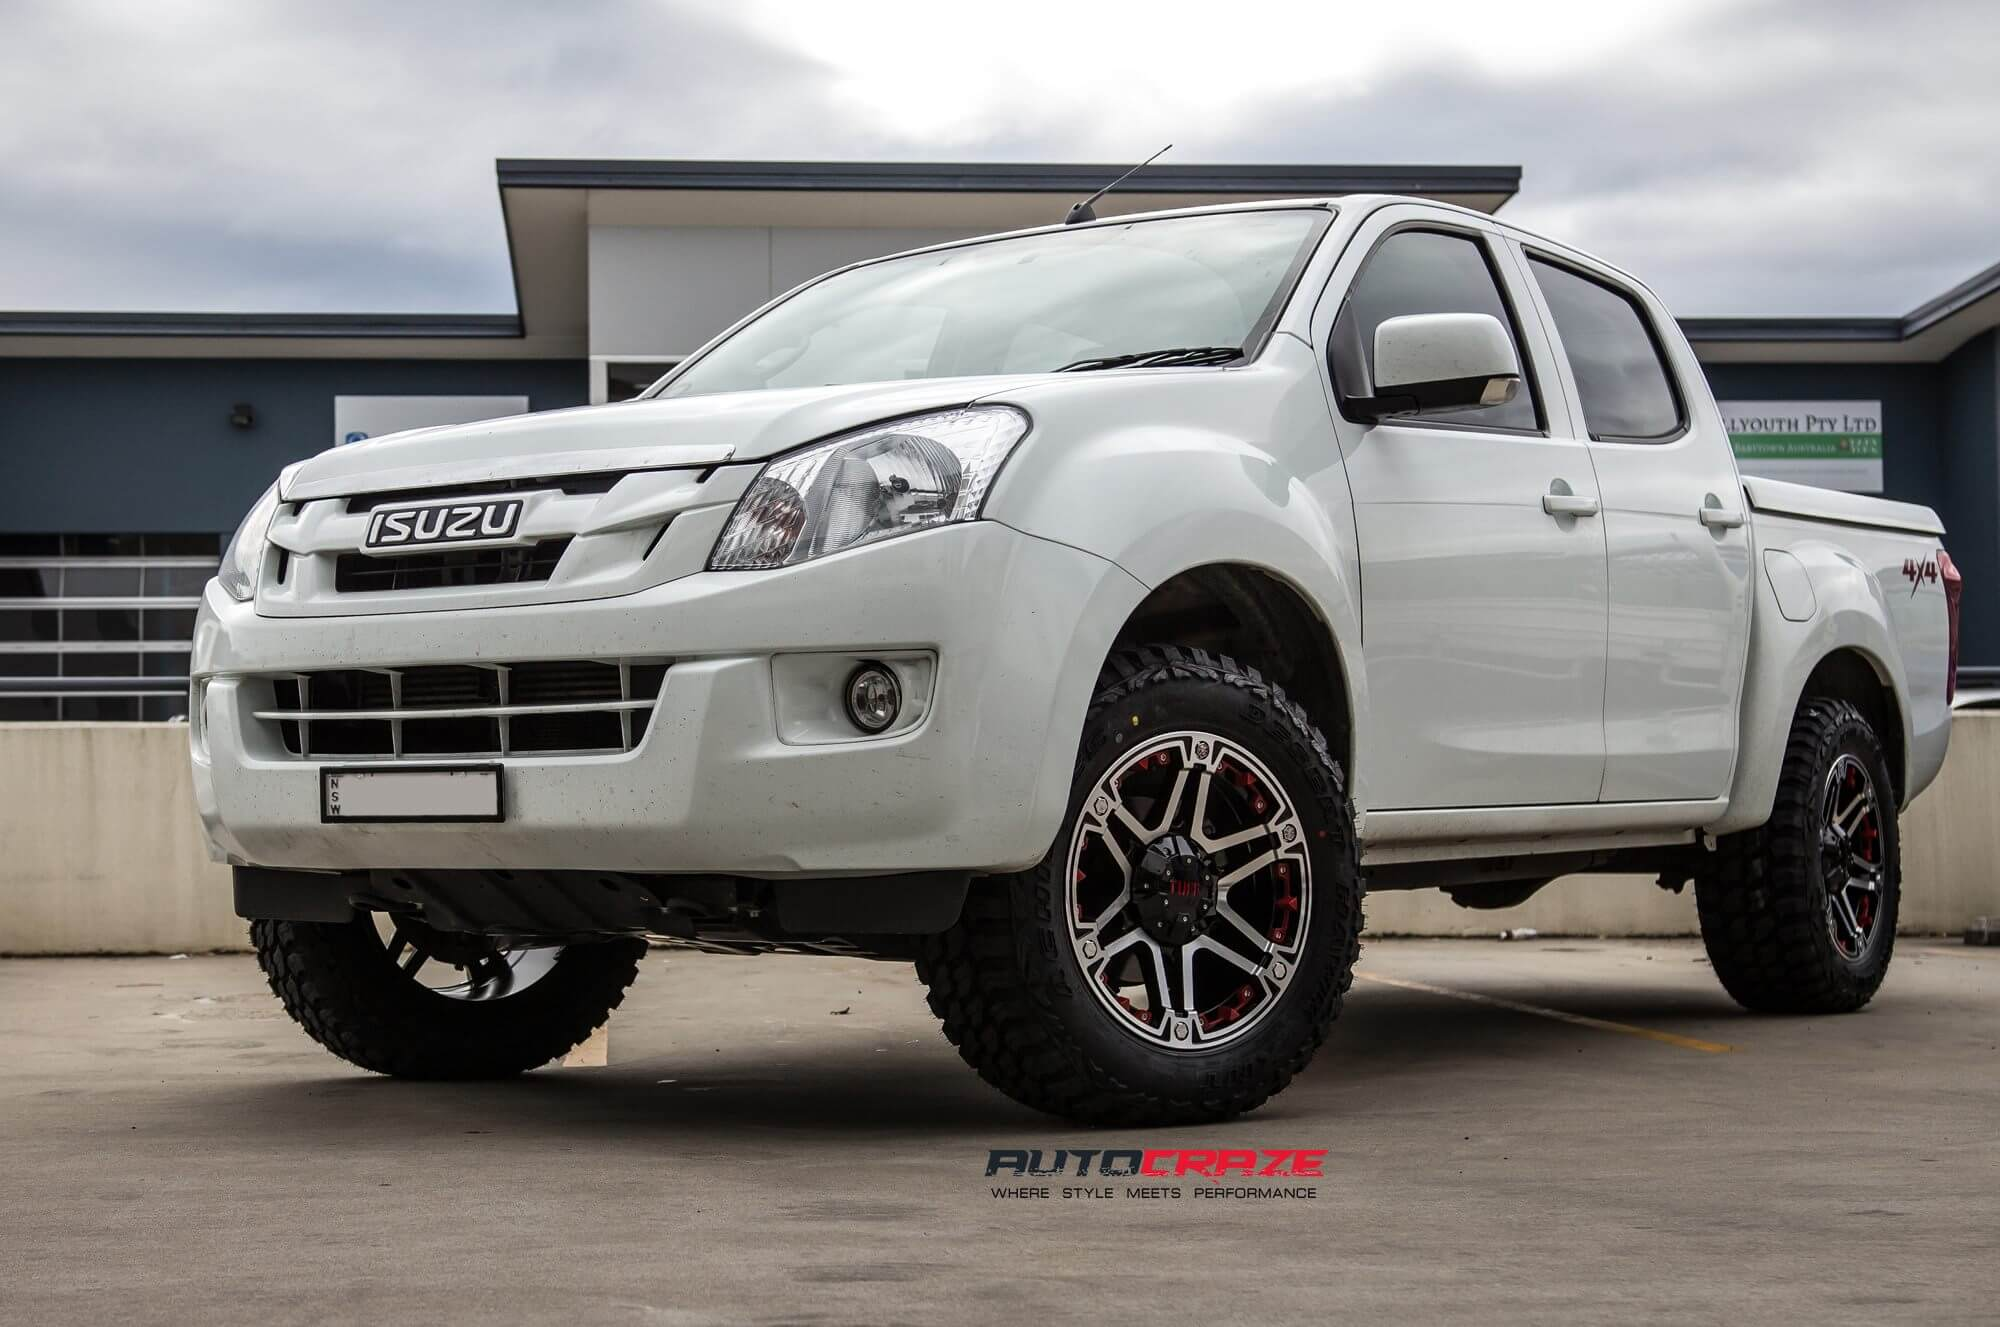 isuzu dmax wheels shop top brands dmax aftermarket rims. Black Bedroom Furniture Sets. Home Design Ideas